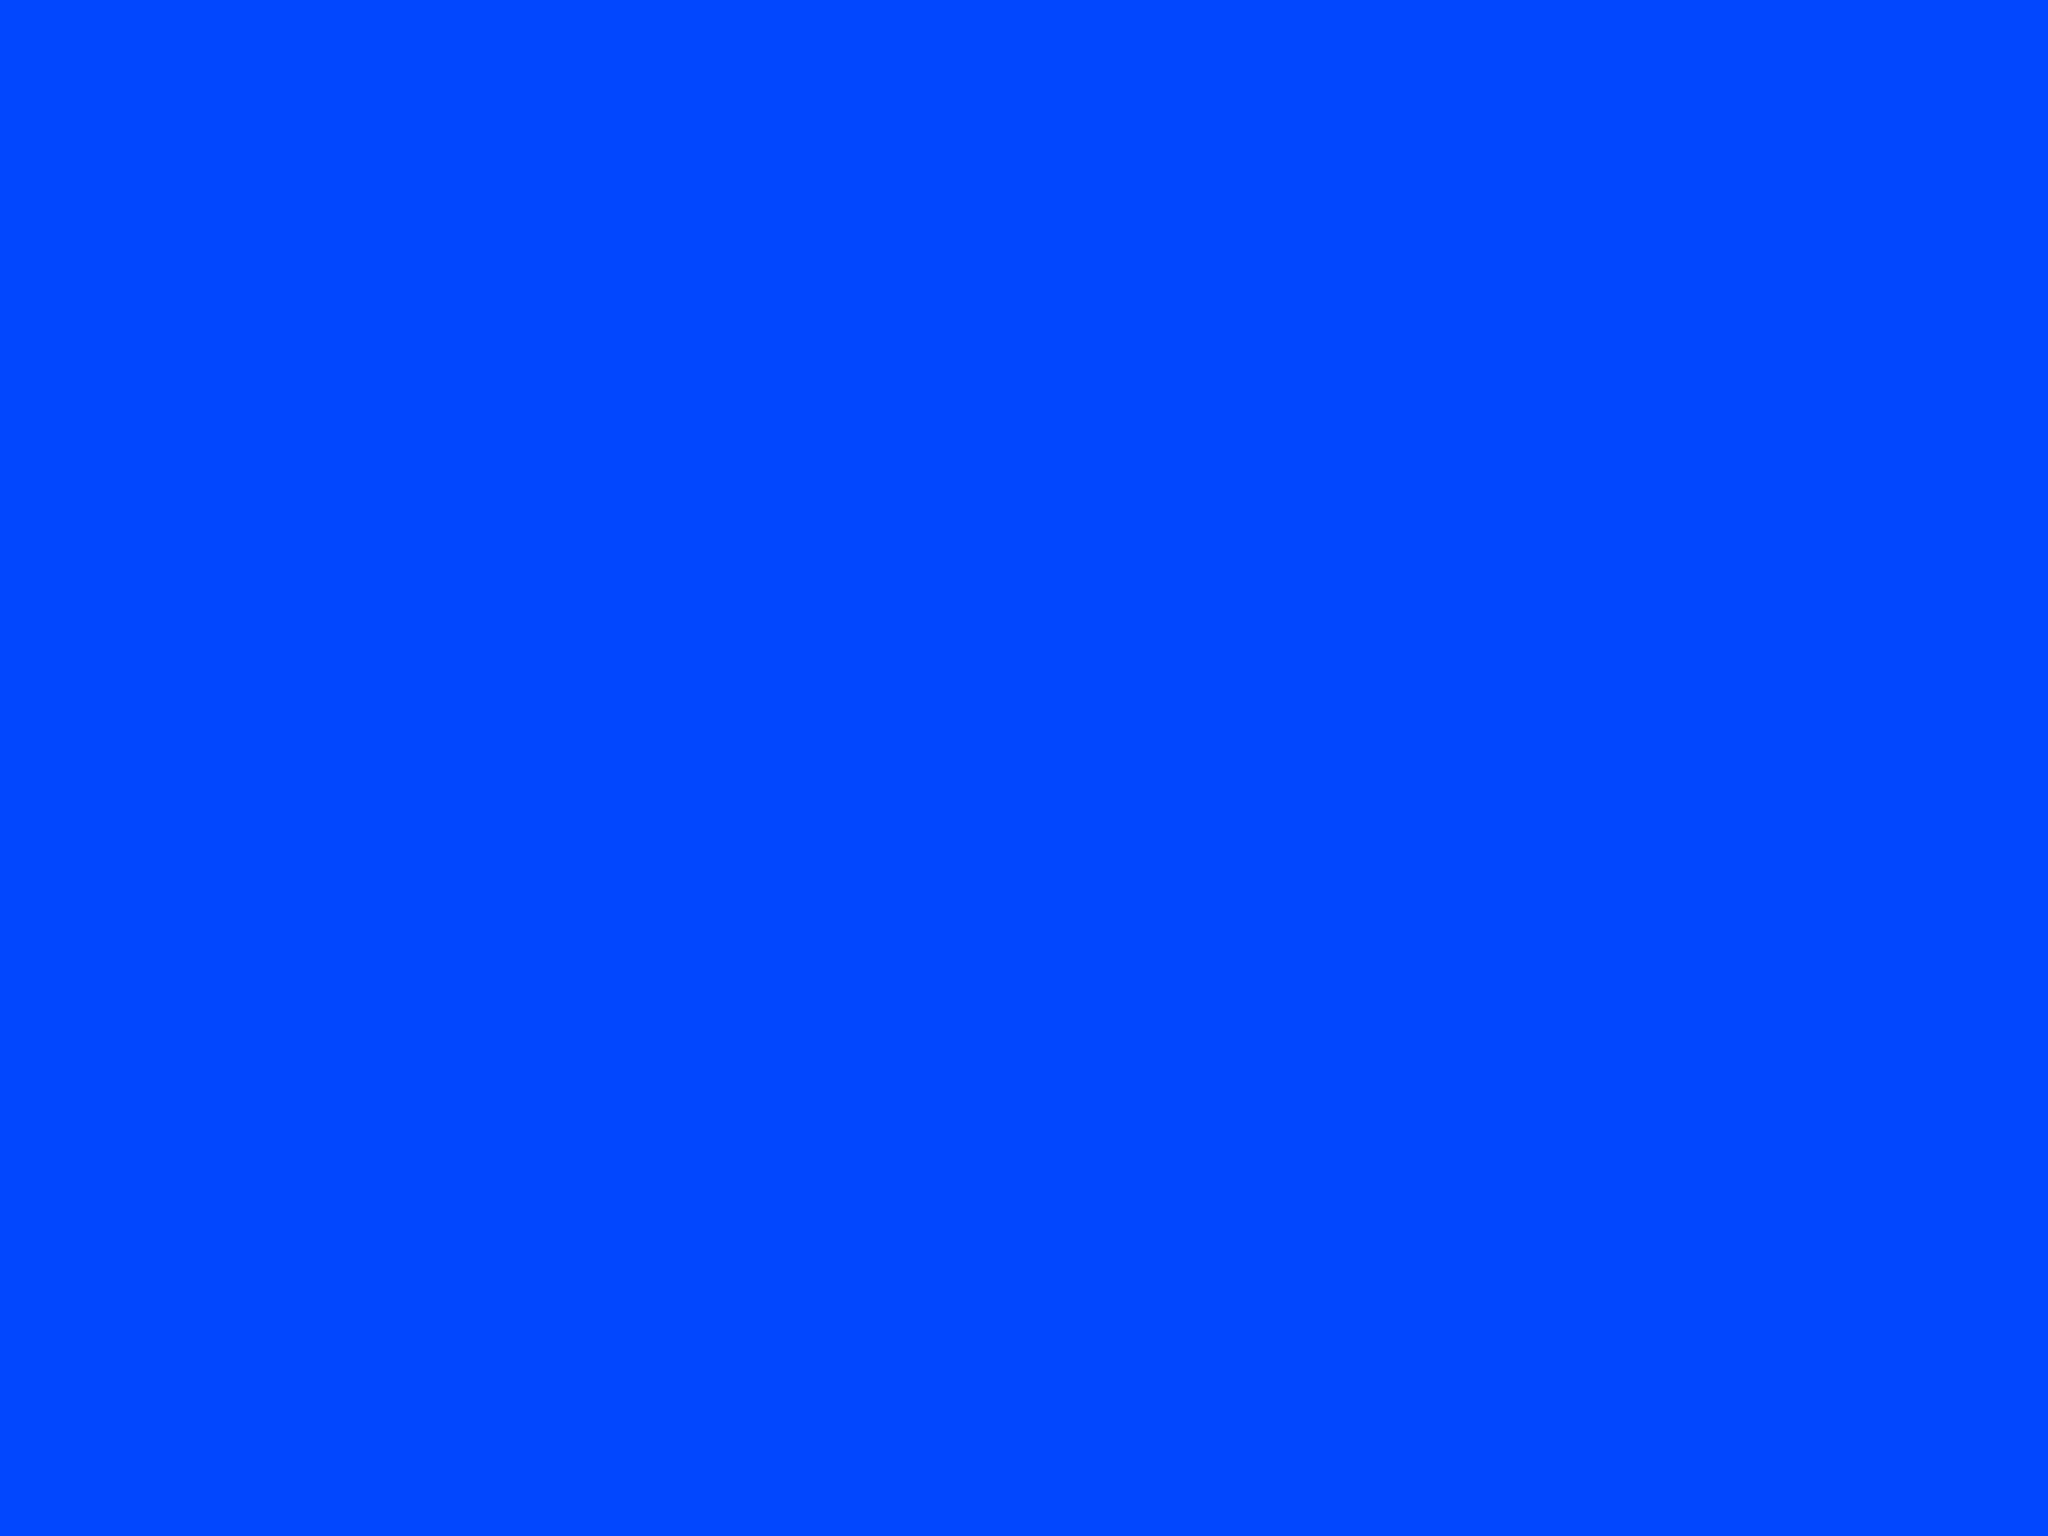 2048x1536 Blue RYB Solid Color Background